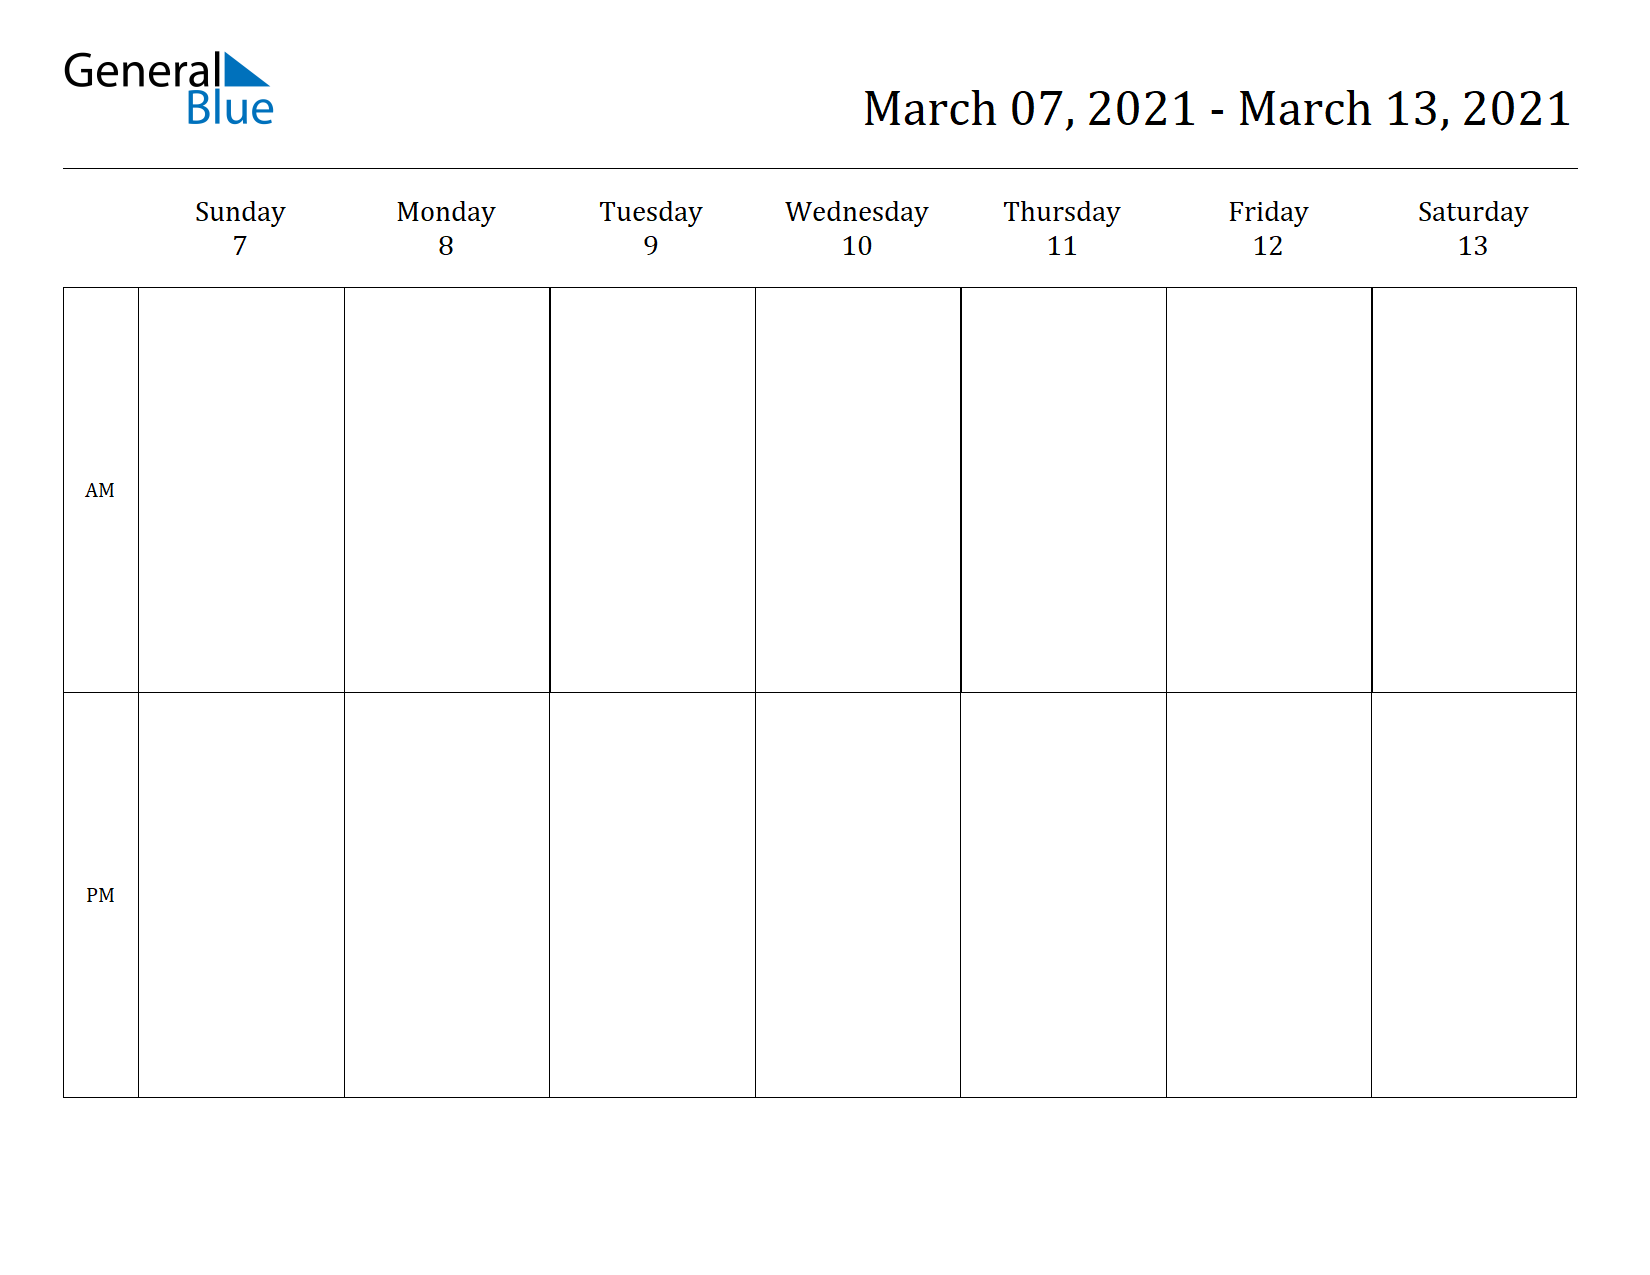 Weekly Calendar for Mar 07, 2021 to Mar 13, 2021